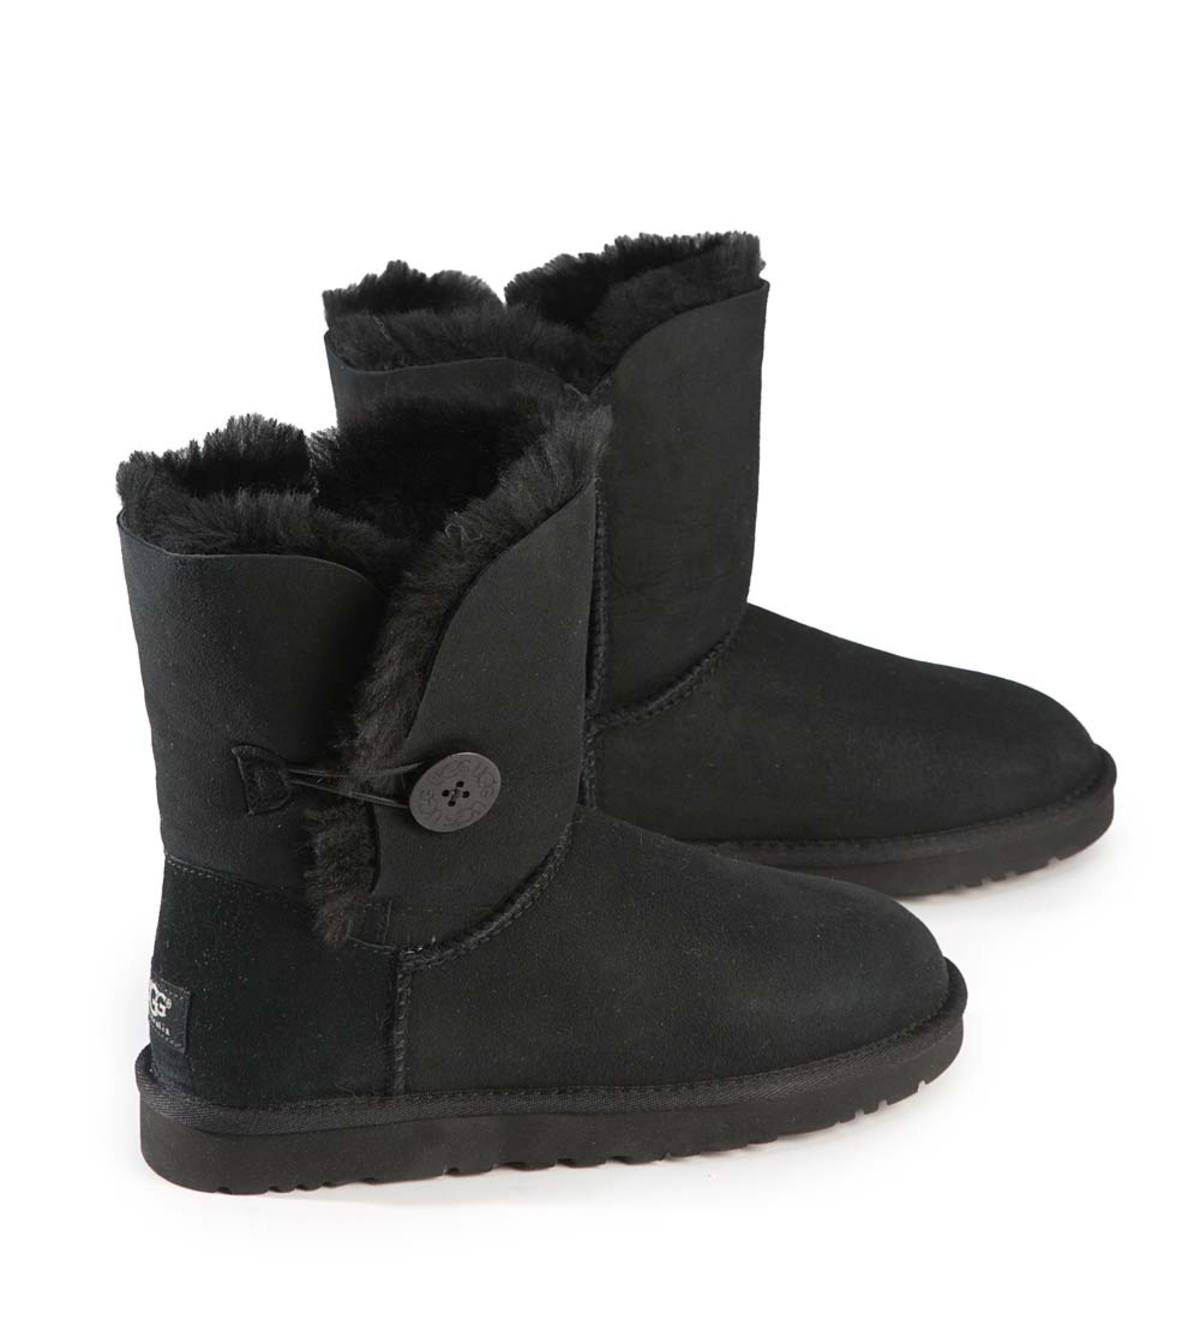 UGG Women's Bailey Button II Boots - Black - Size 6